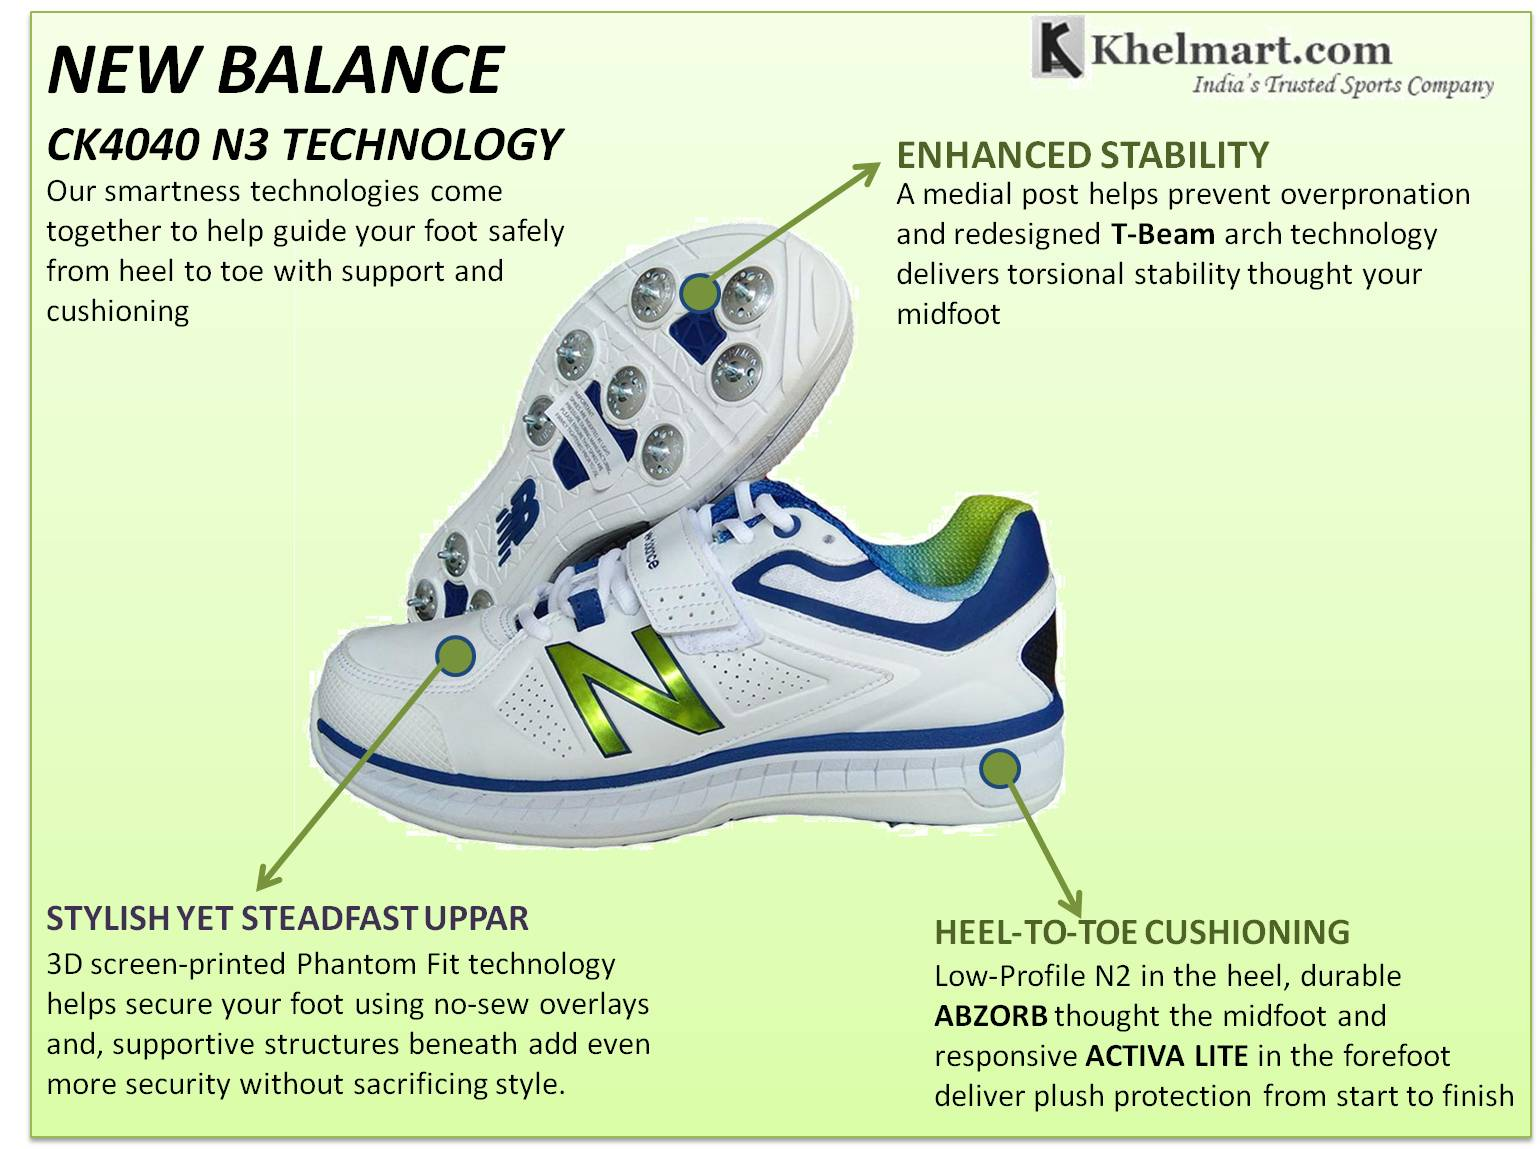 New Balance ck 40 40 n3 chaussures de cricket